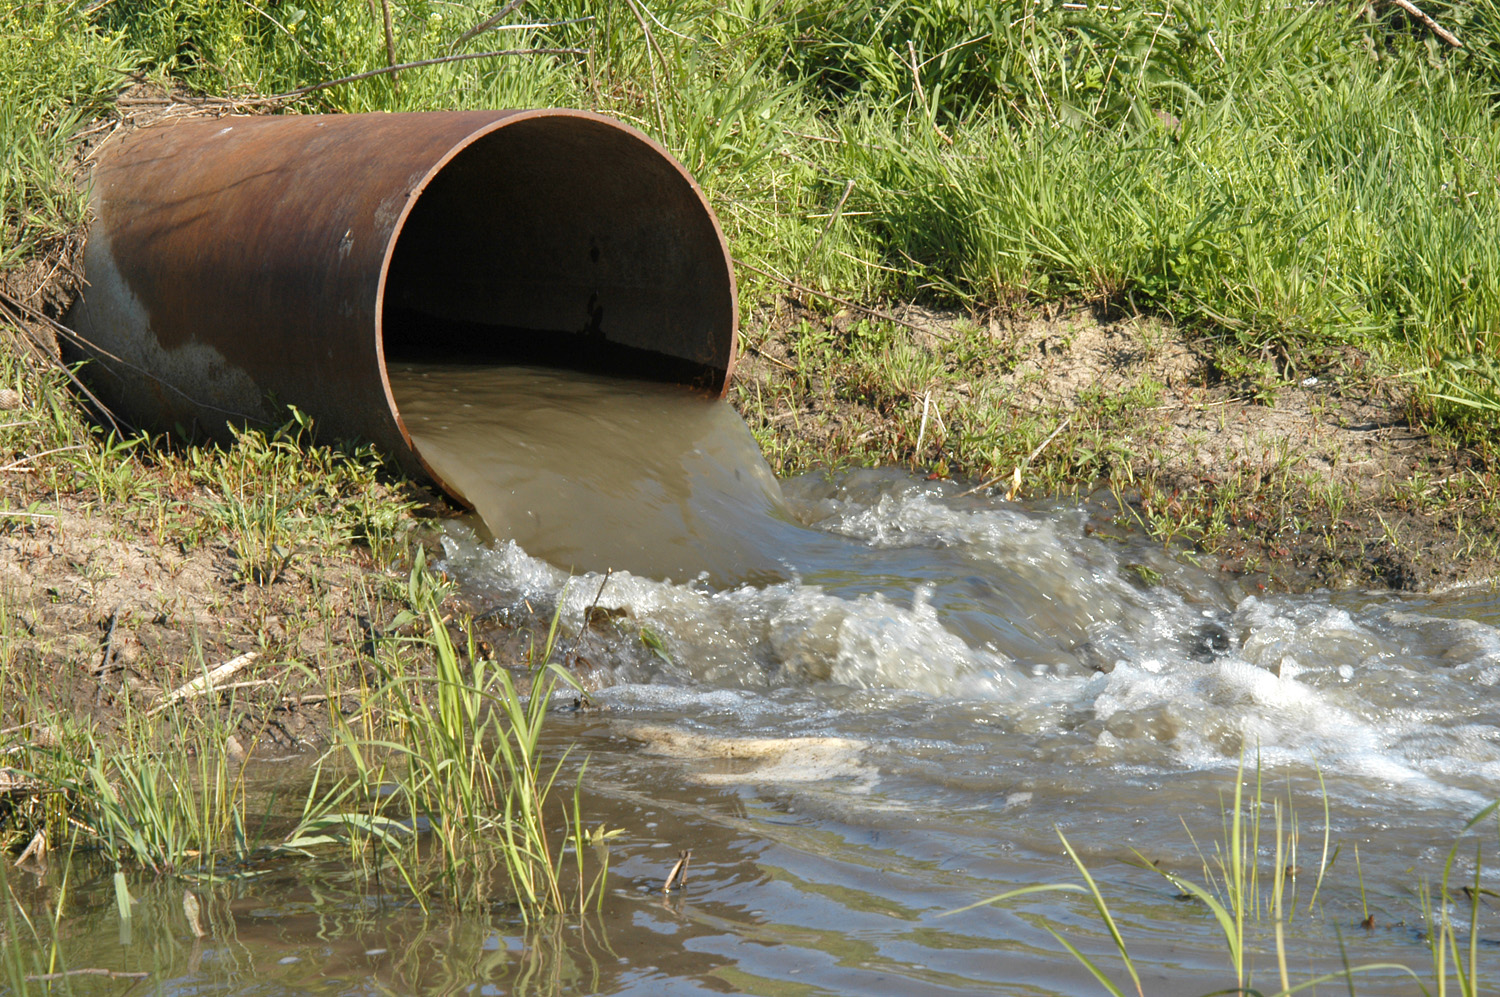 Wastewater discharge pipe by USDA NRCS